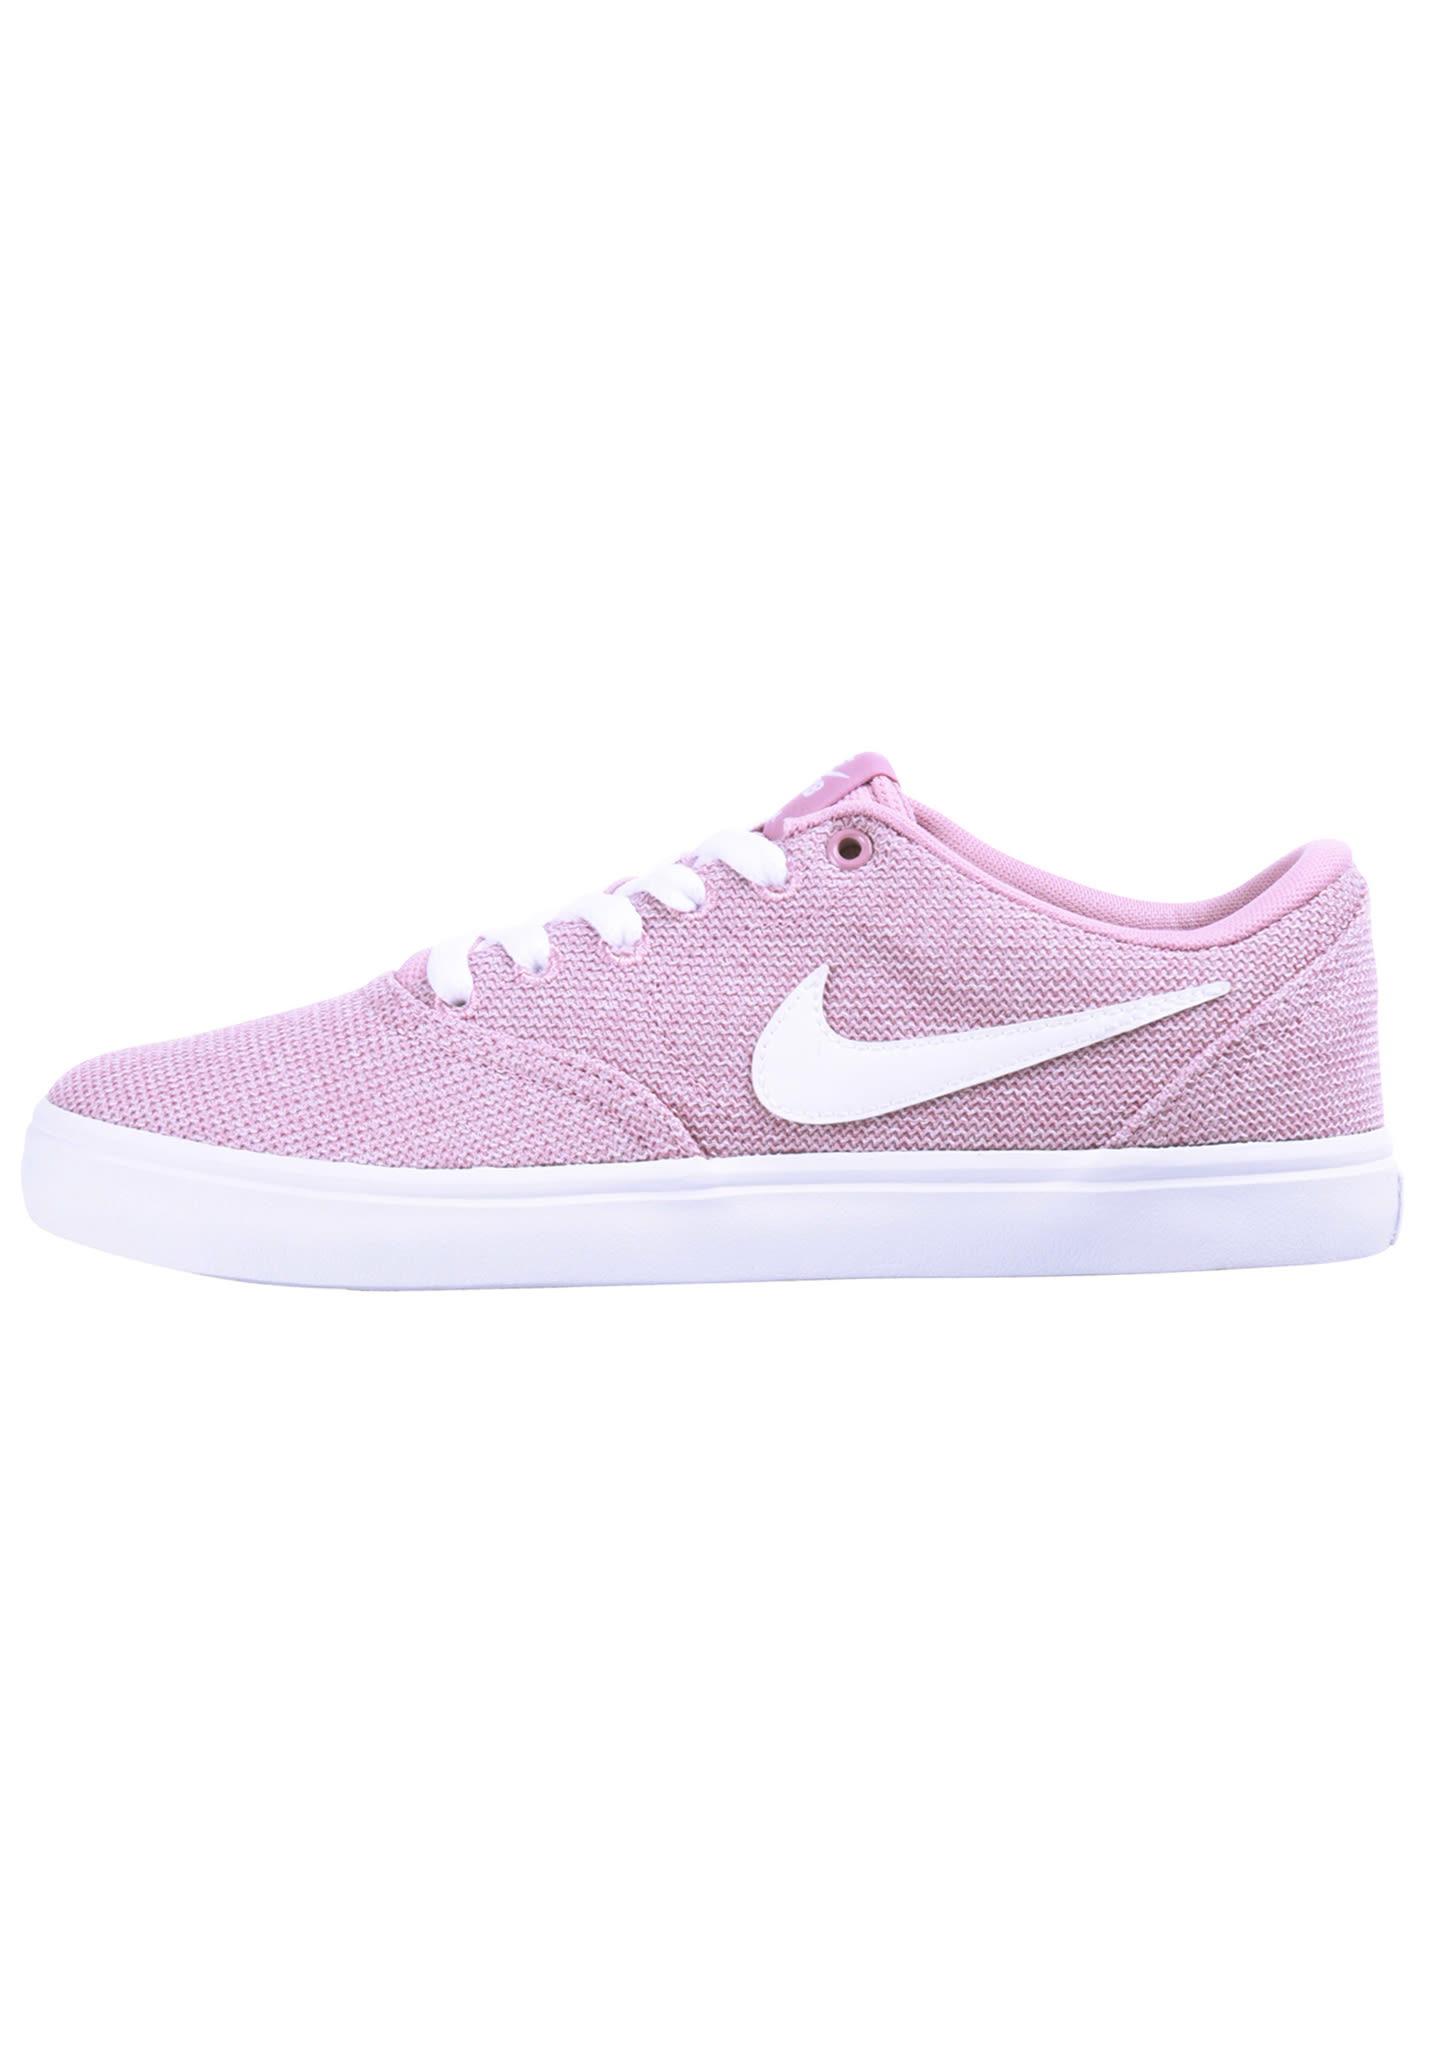 0d1ac7f10d NIKE SB Check Solar Canvas P - Sneakers for Women - Pink - Planet Sports